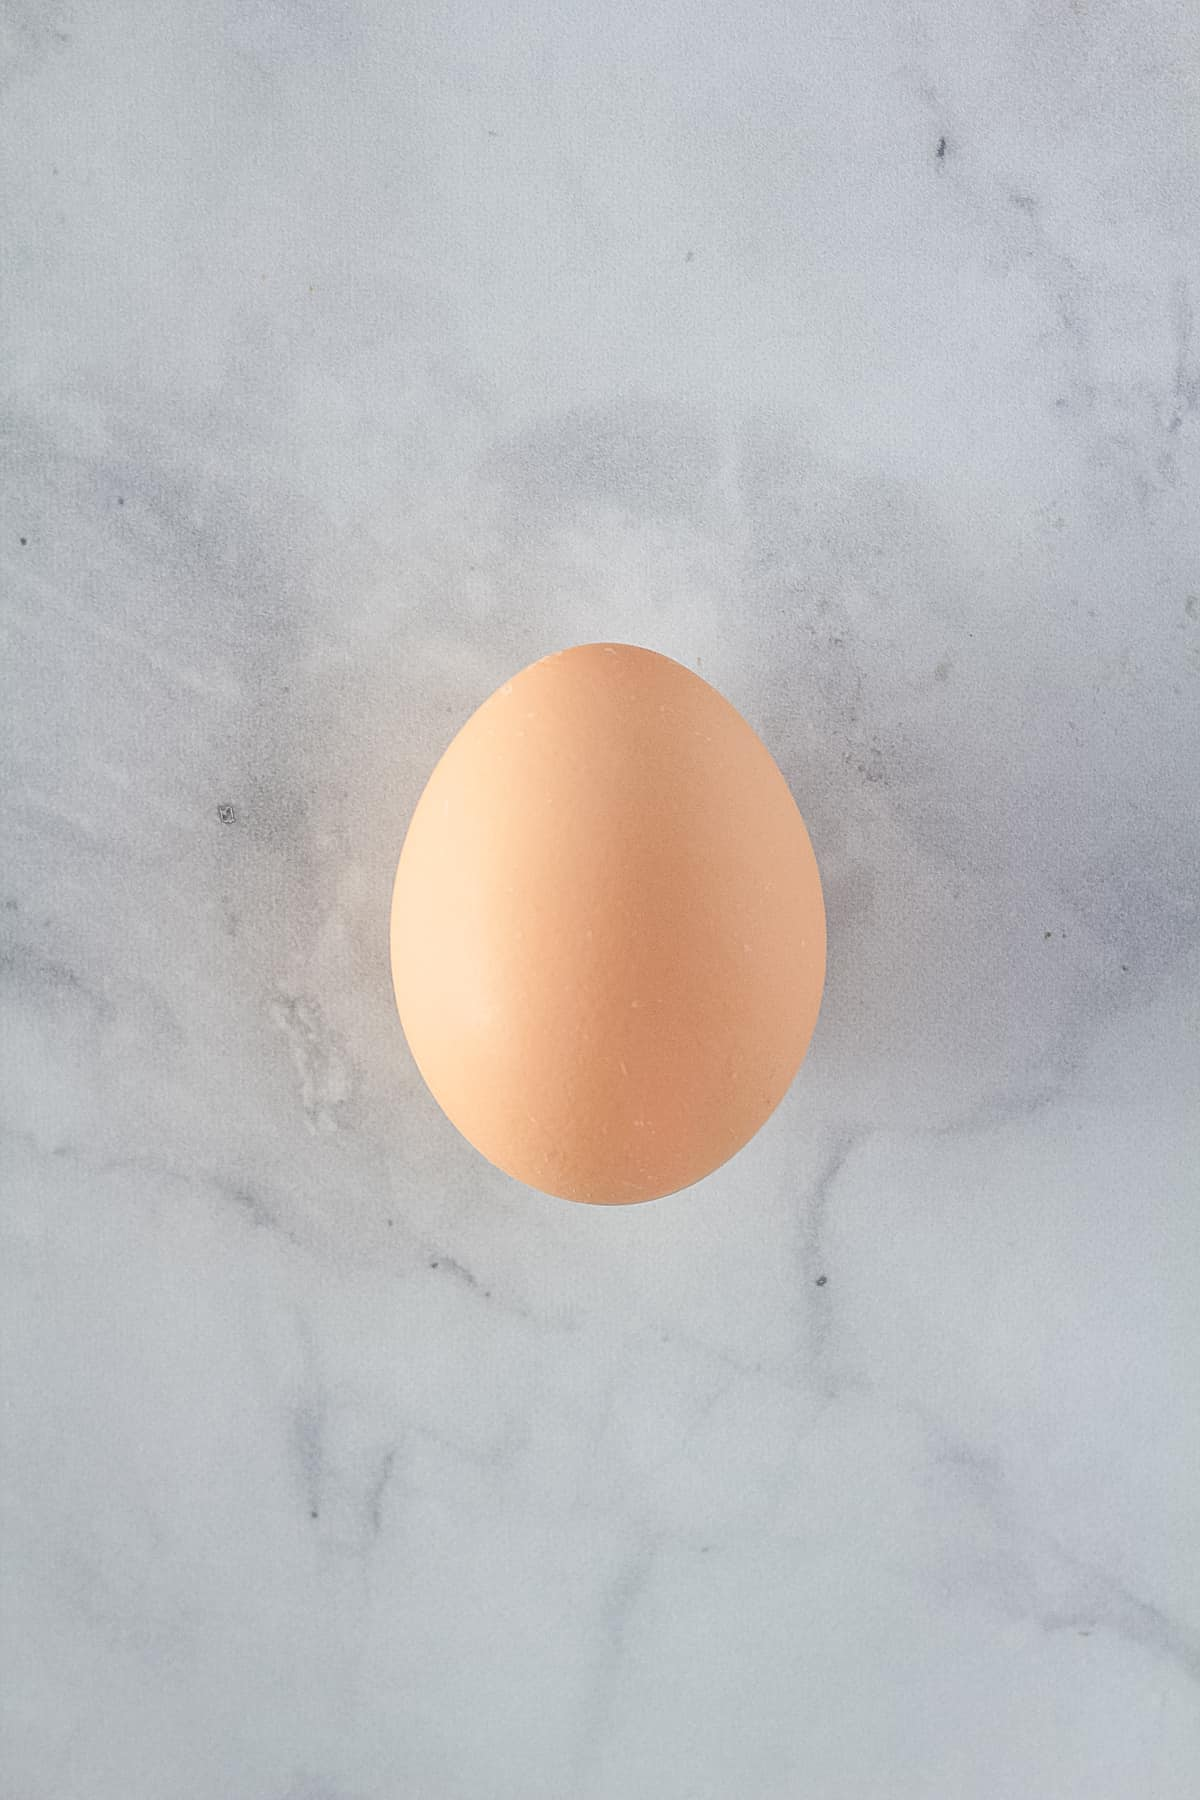 One brown egg.